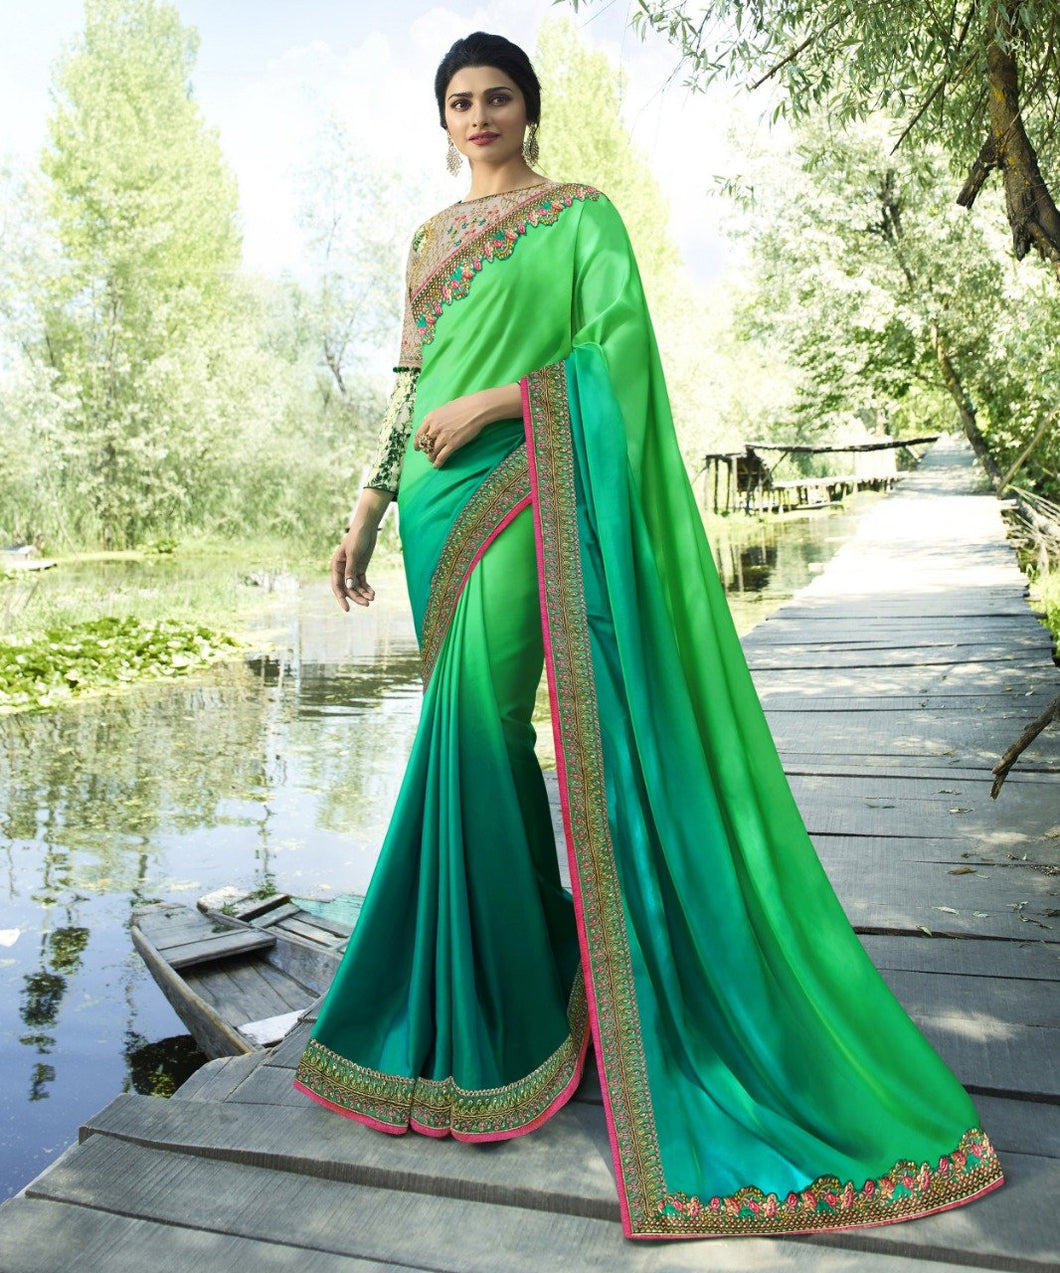 vechan - Gorgeous Green Rangoli Silk Saree With Blouse - LECART.in - Saree